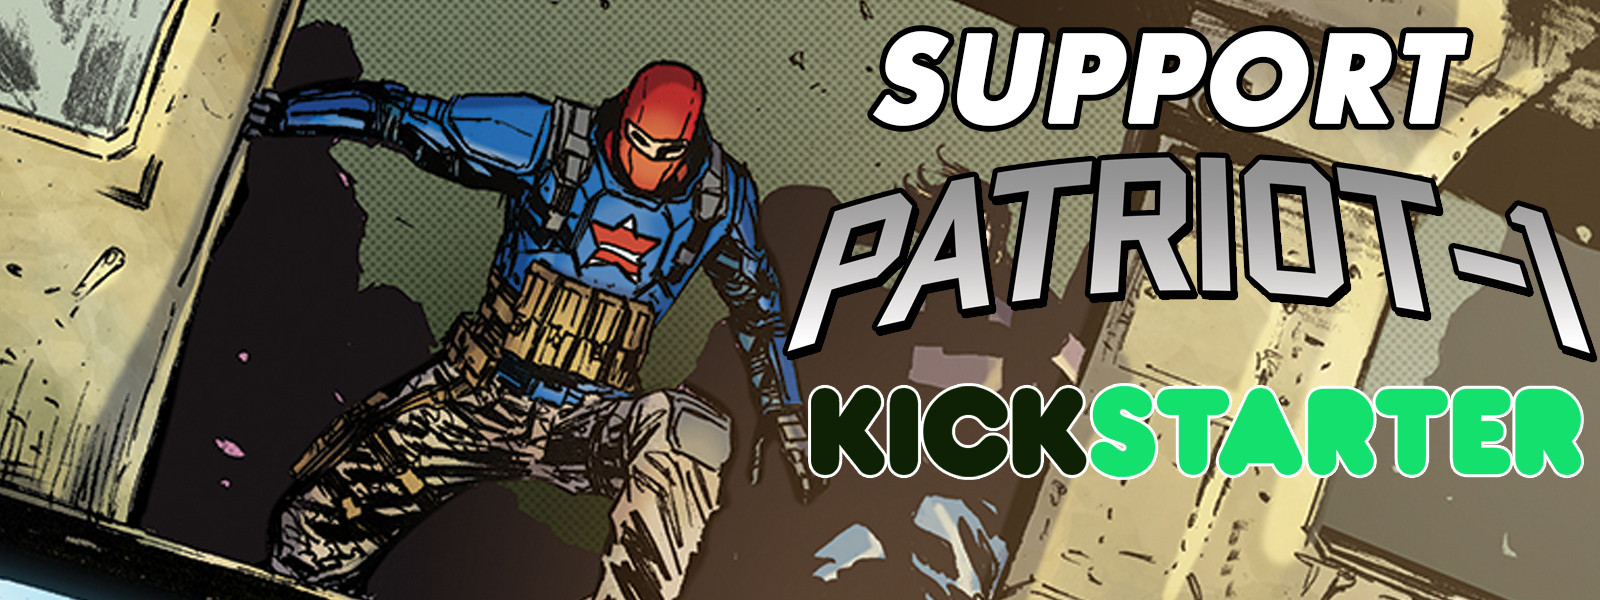 Support Patriot-1 on Kickstarter!